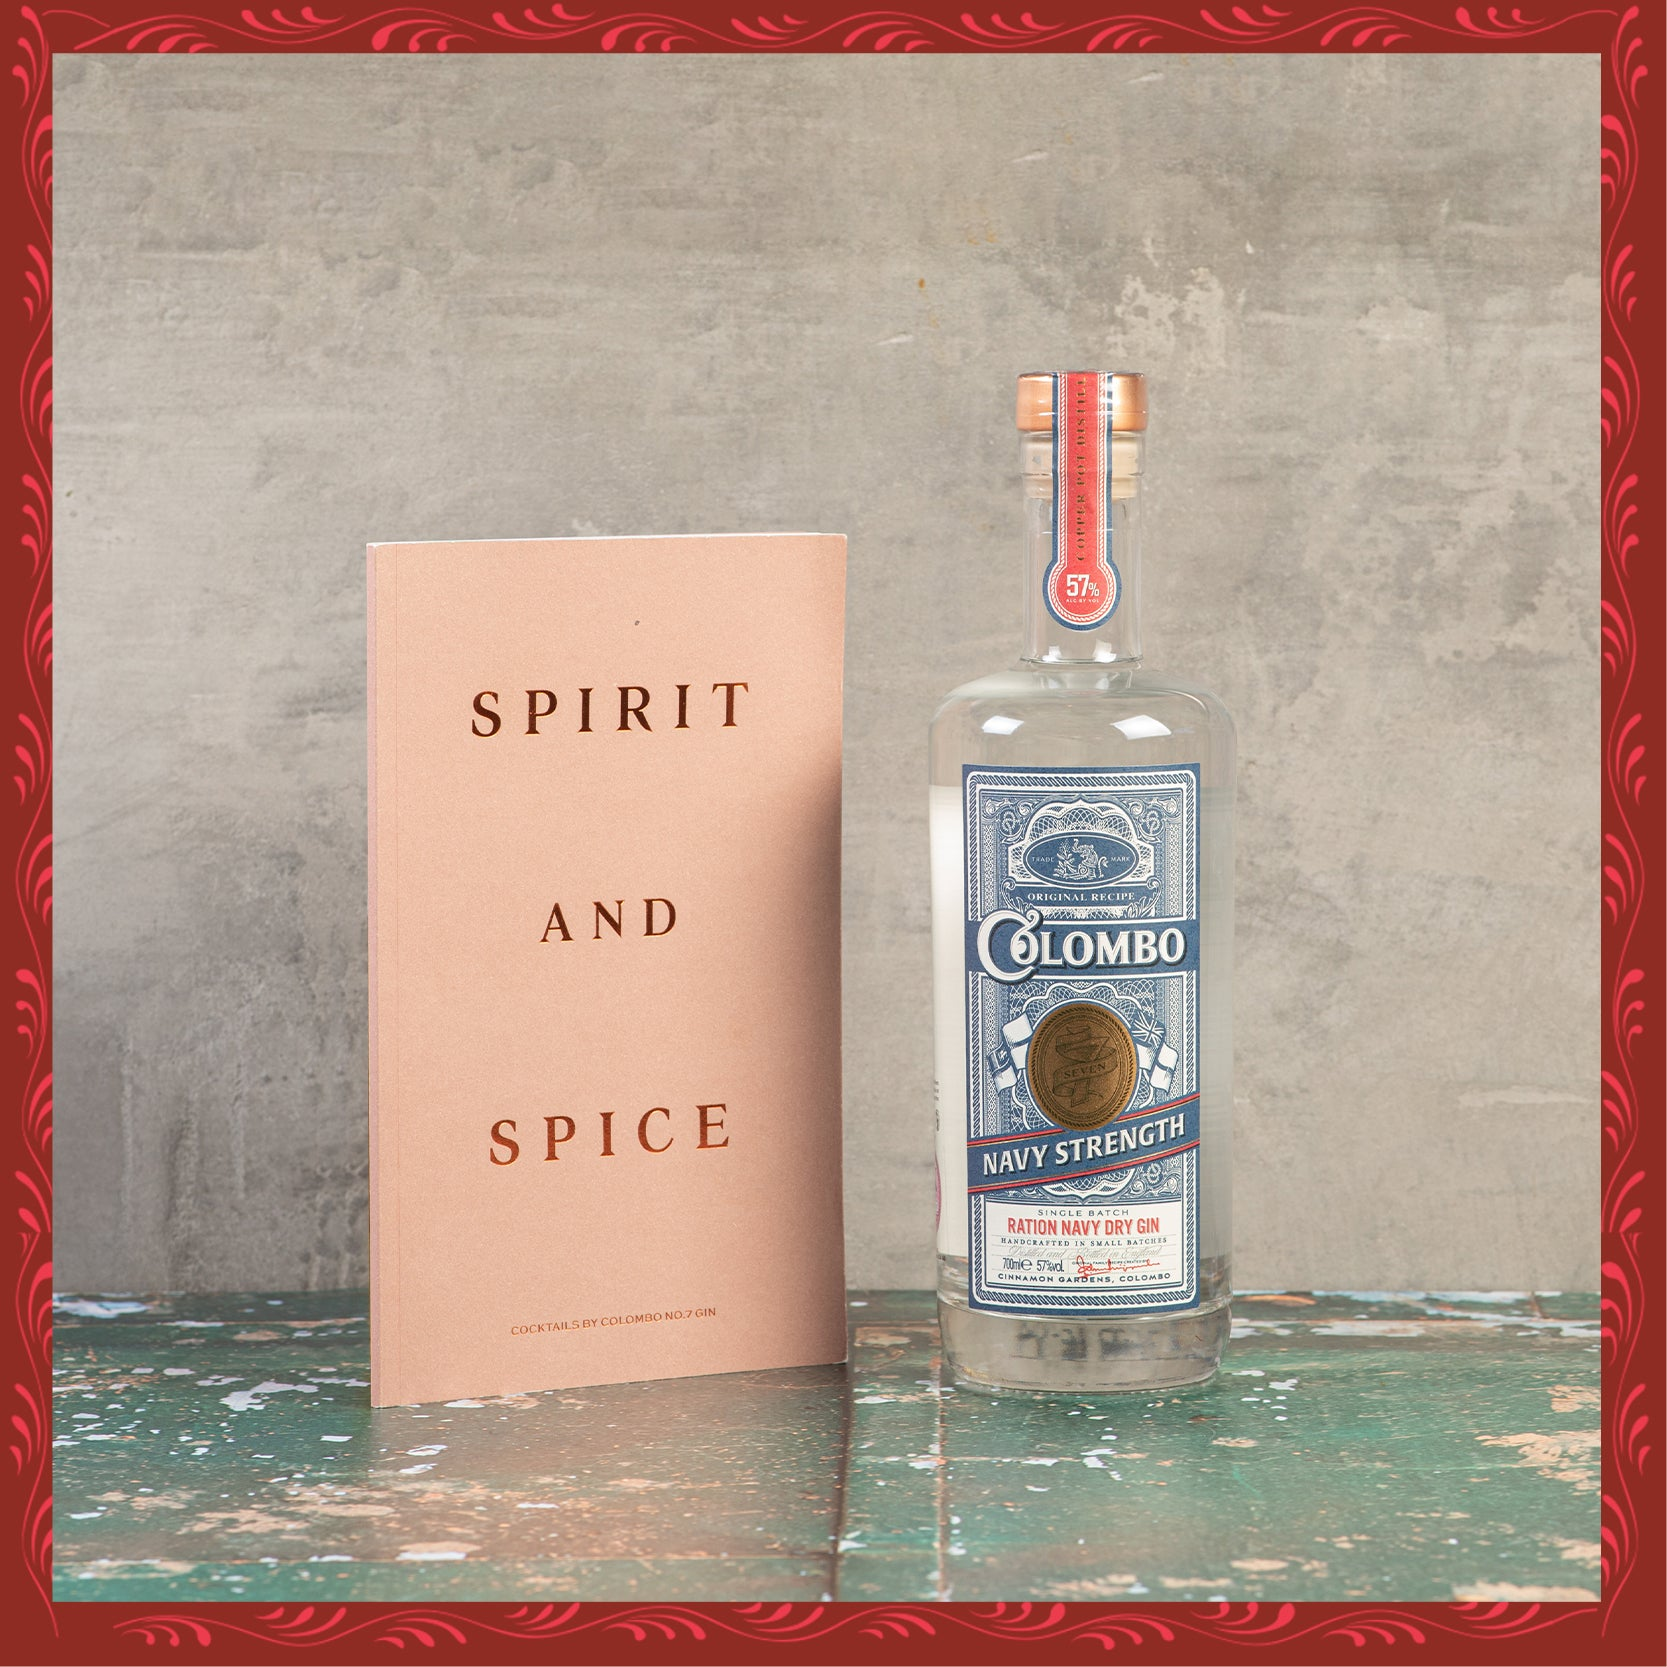 Navy Strength and Colombo 7 + Spirit and Spice